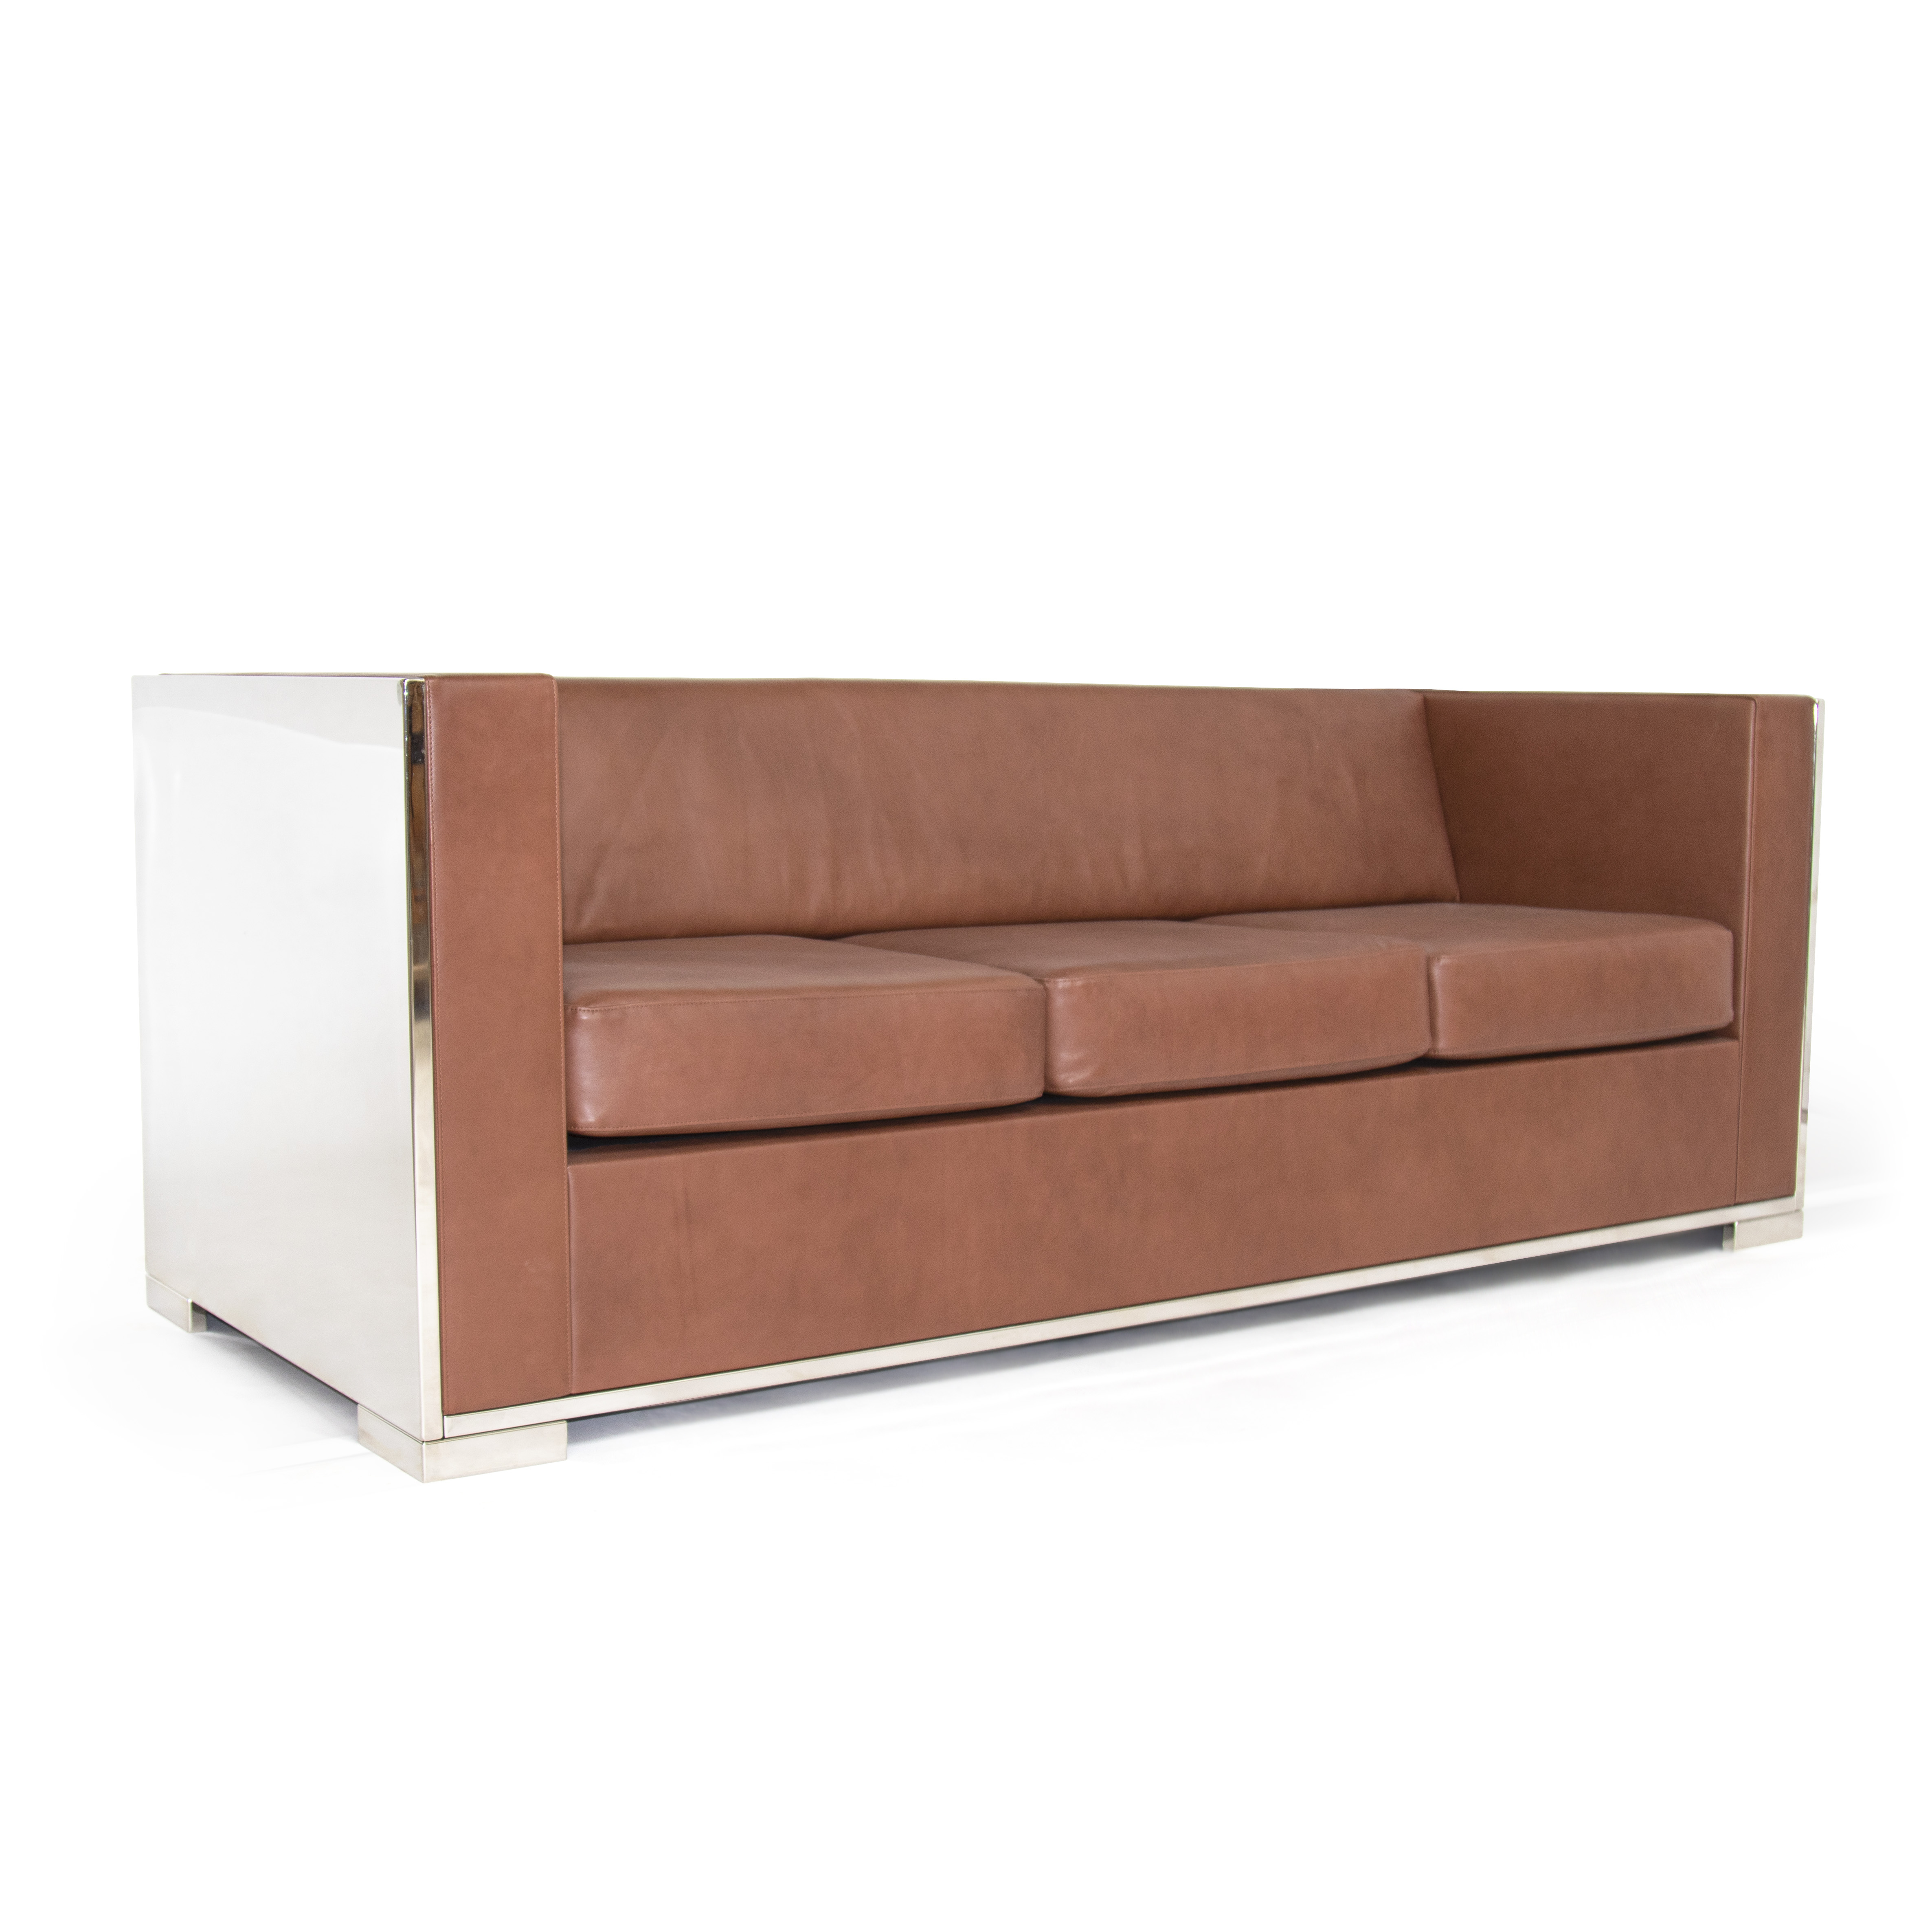 02_Glossy_bench_perspective01_THUMBNAIL-1